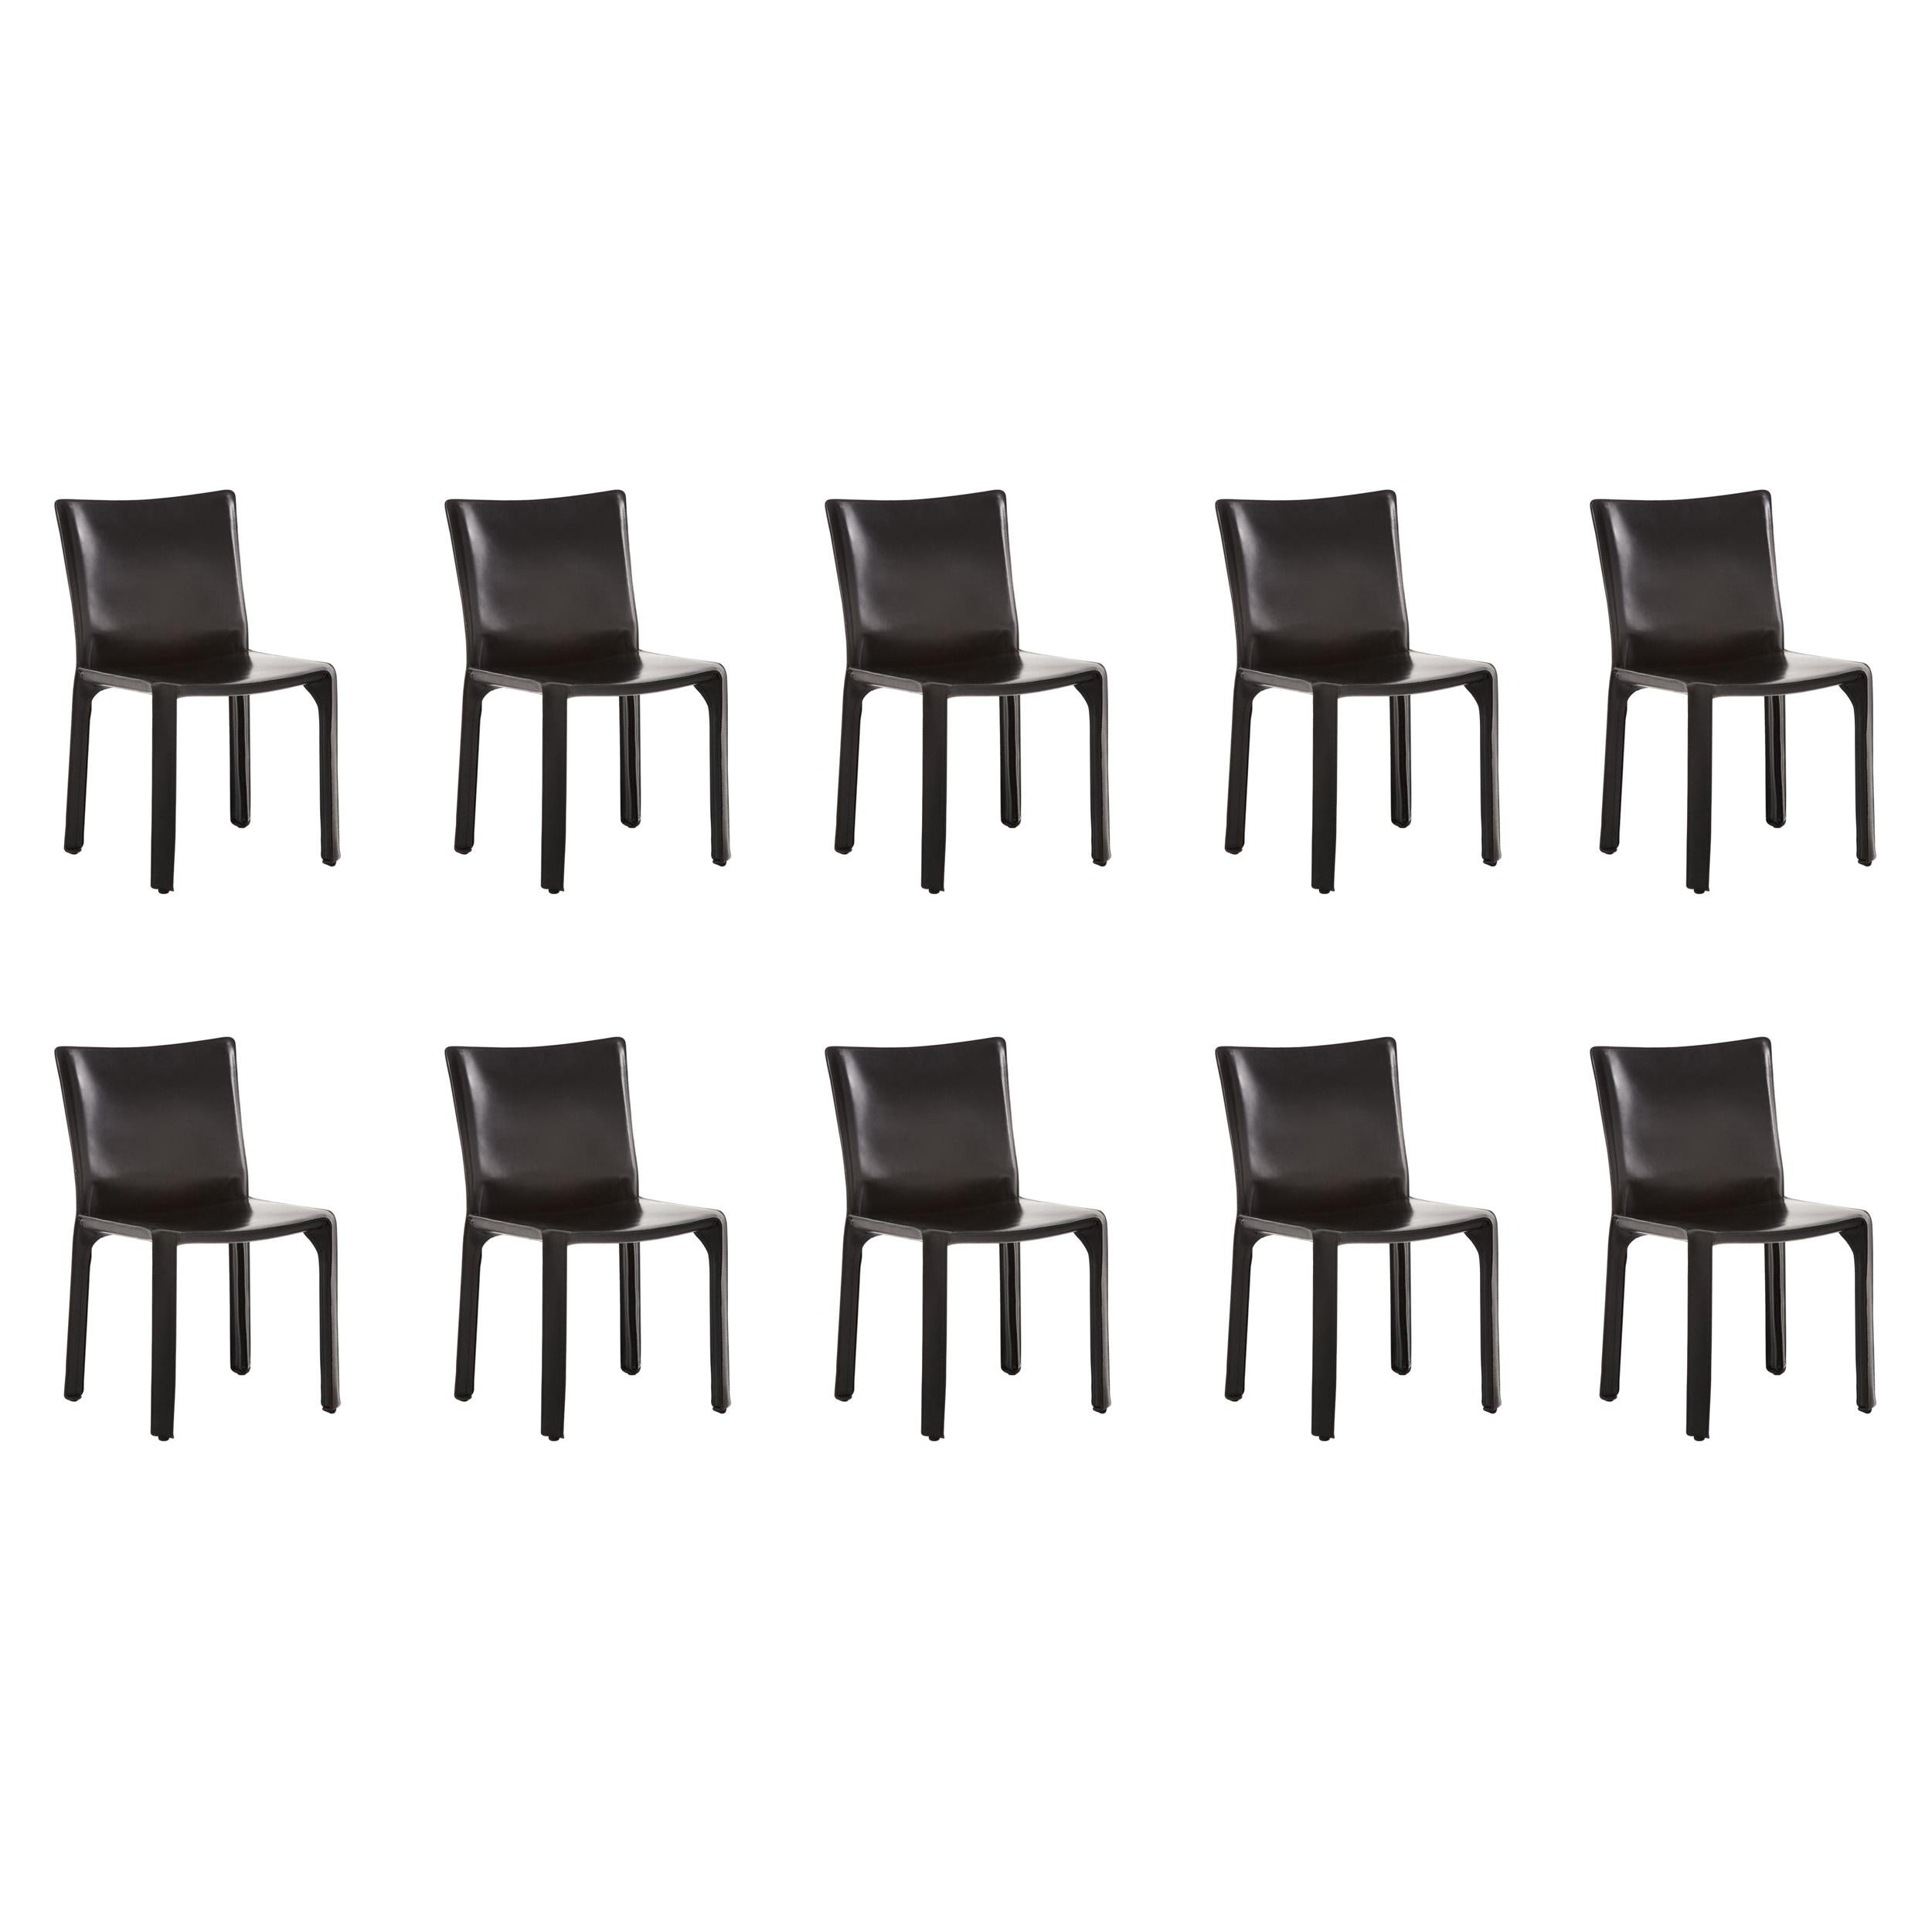 Mario Bellini Set of Ten Chairs CAB 412 in Black Leather Cassina, 1970s, Italy